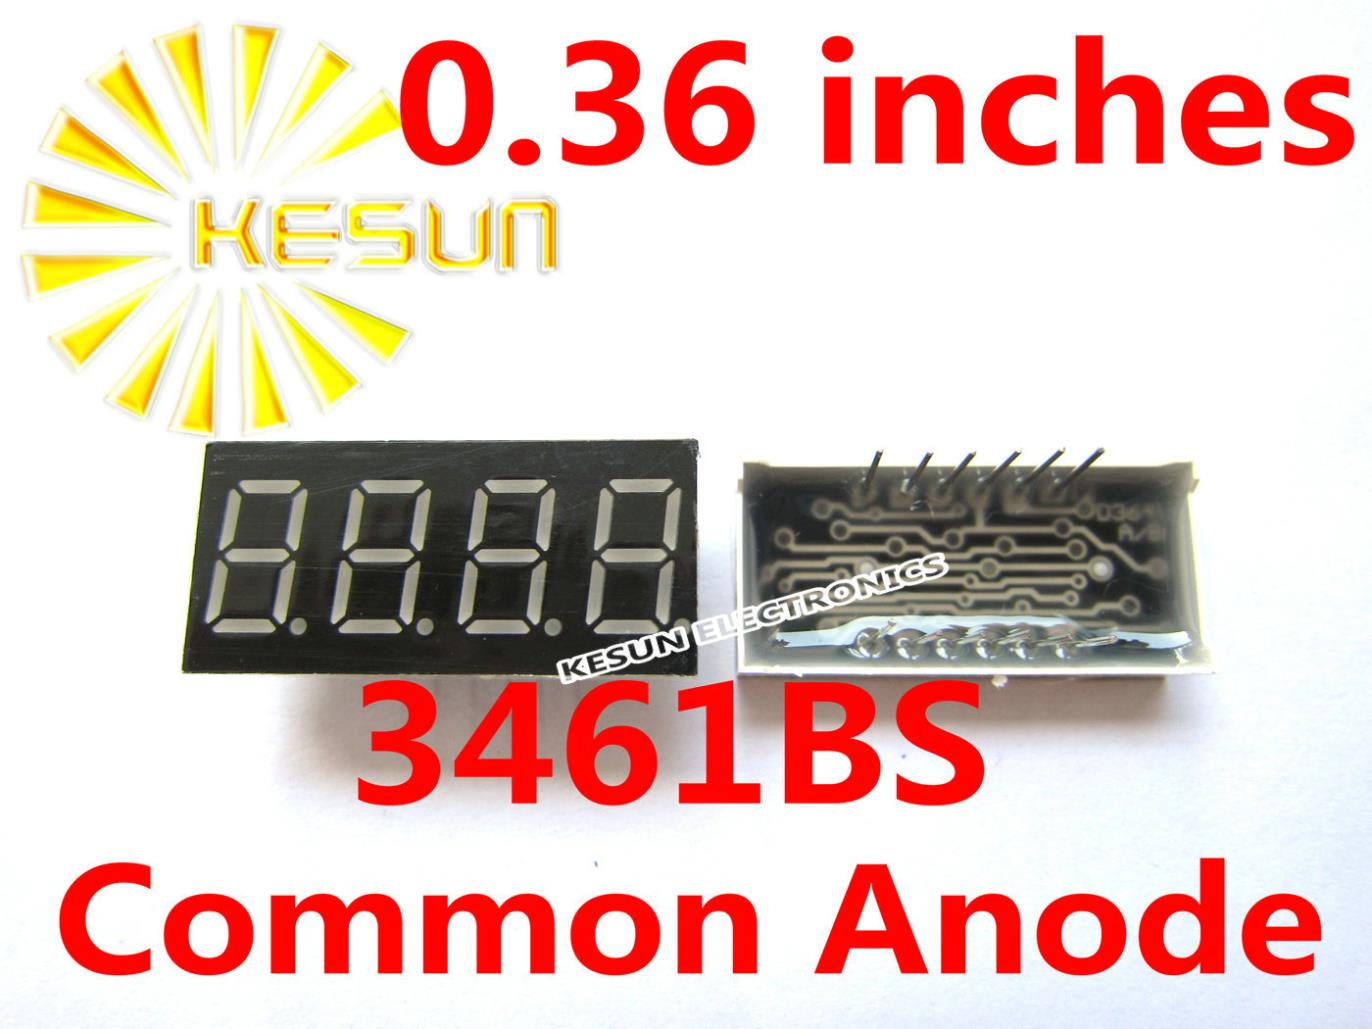 100PCS X 0.36 Inches Red Green Common Anode/Cathode 4 Digital Tube 3461BS 3461AS 3461AG 3461BG LED Display Module